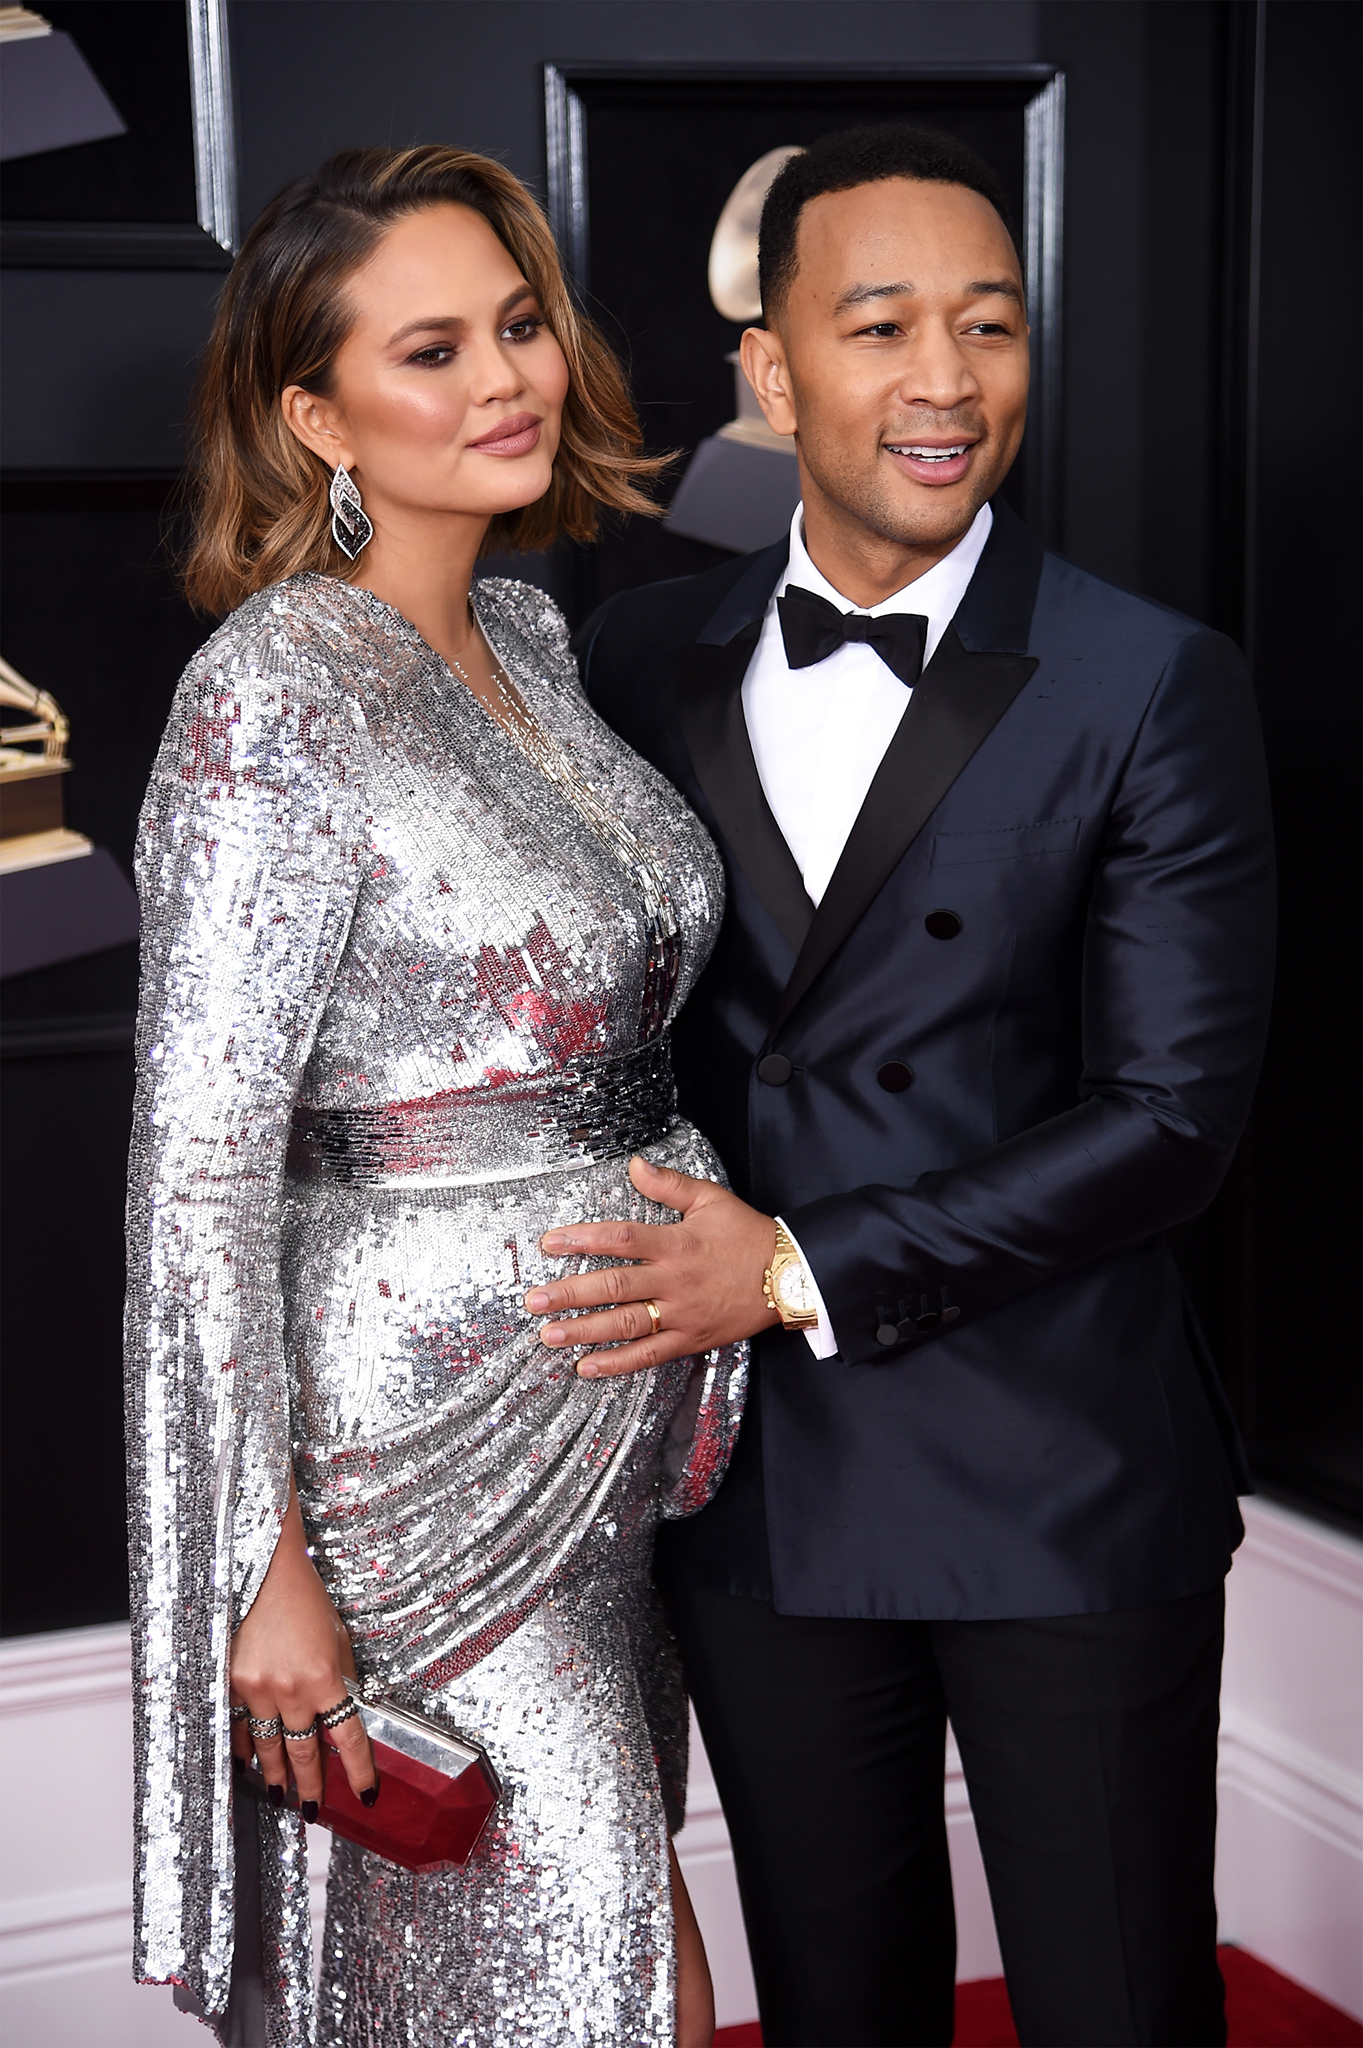 Chrissy Teigen and recording artist John Legend attend the 60th Annual GRAMMY Awards at Madison Square Garden on January 28, 2018 in New York Cityl